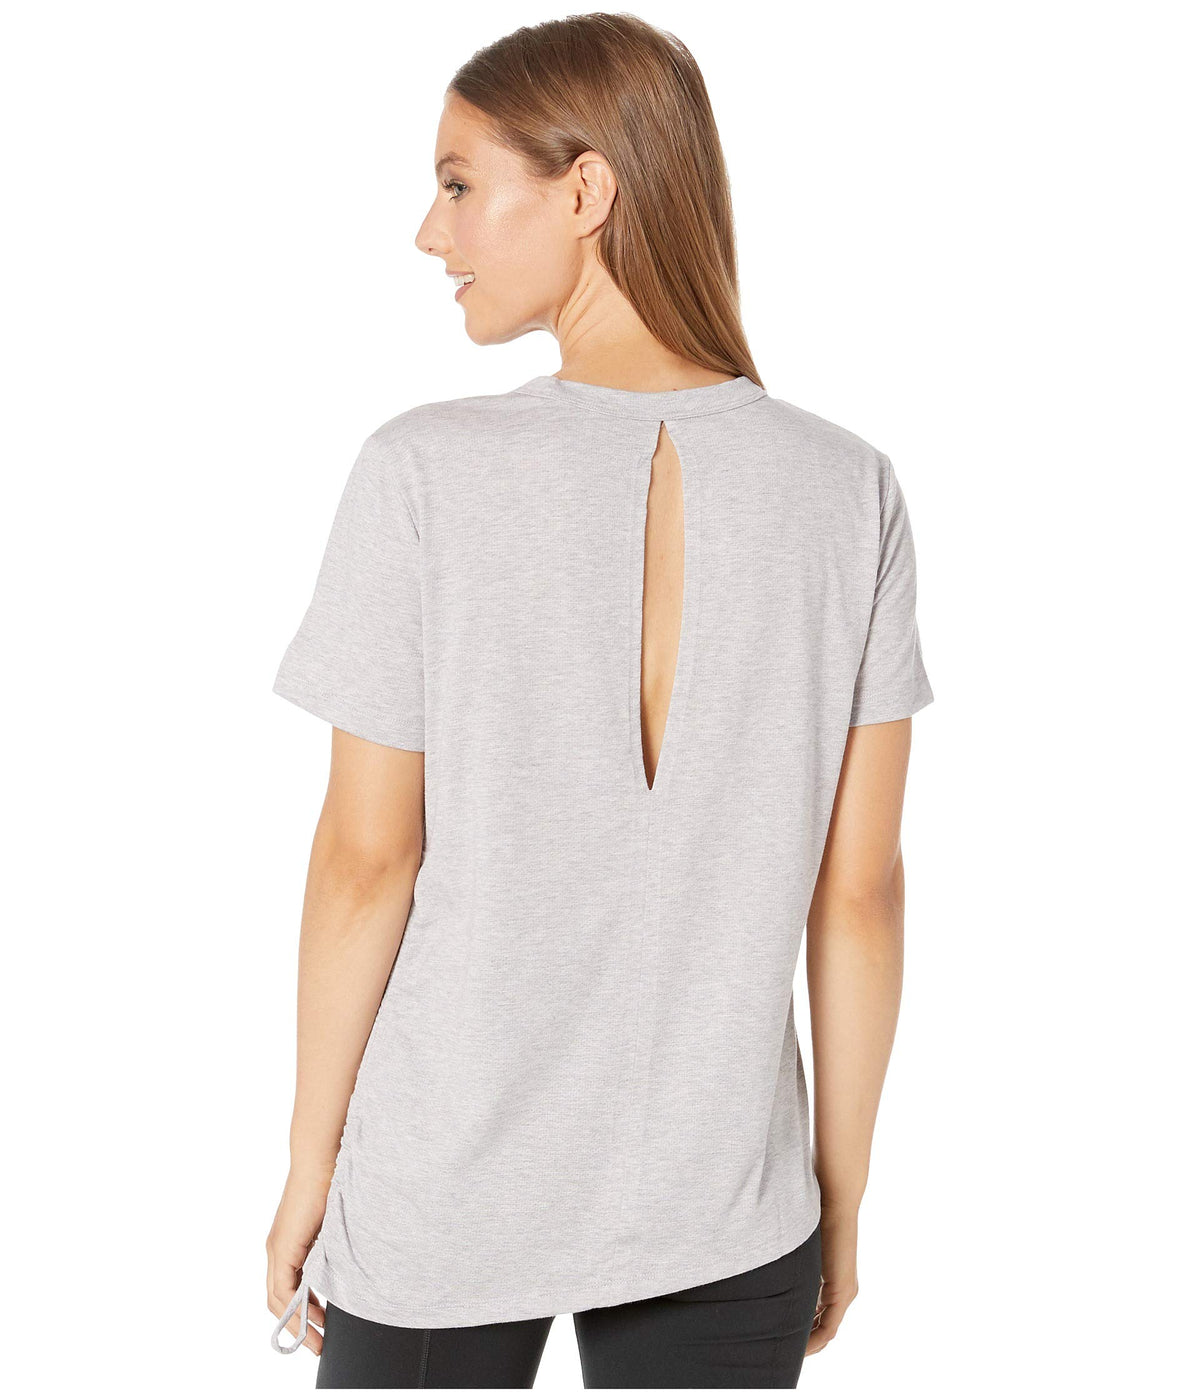 Miler Top Short Sleeve Cinched